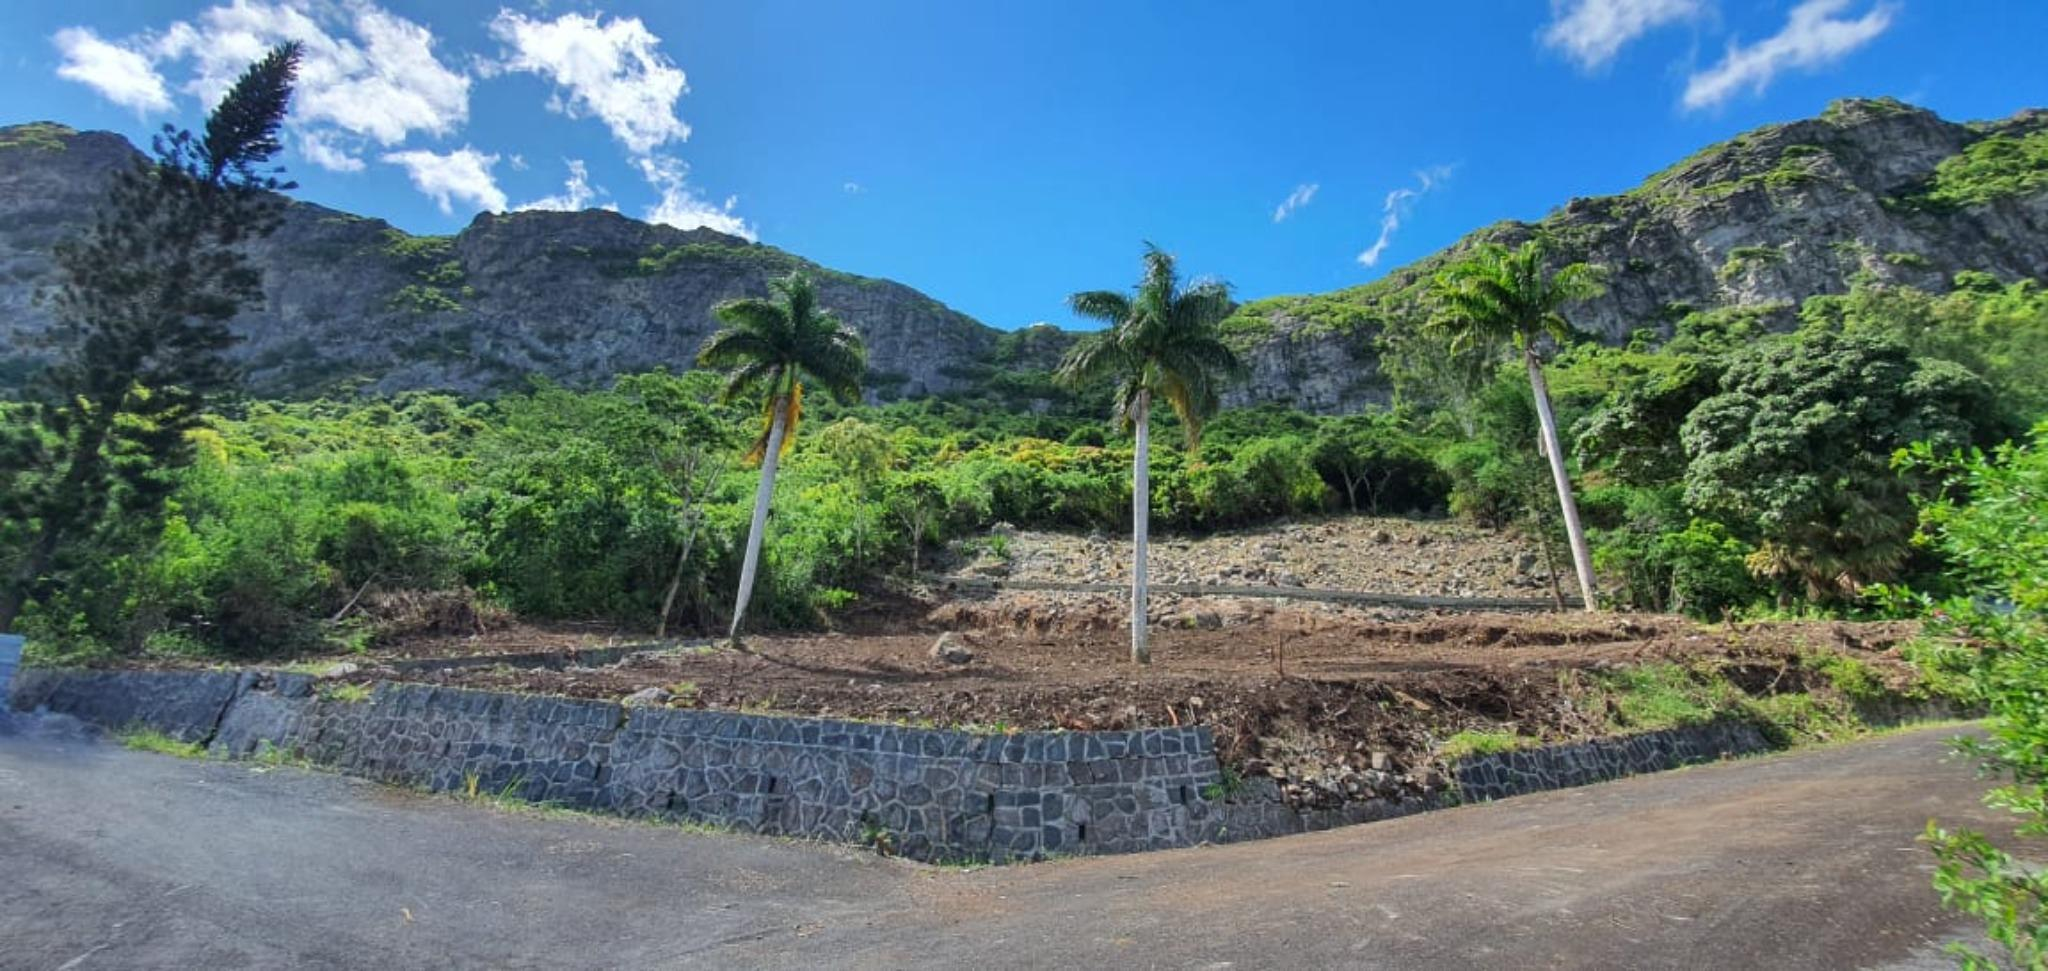 For sale wonderful freehold land of 1 acre 23 is situated in Moka.